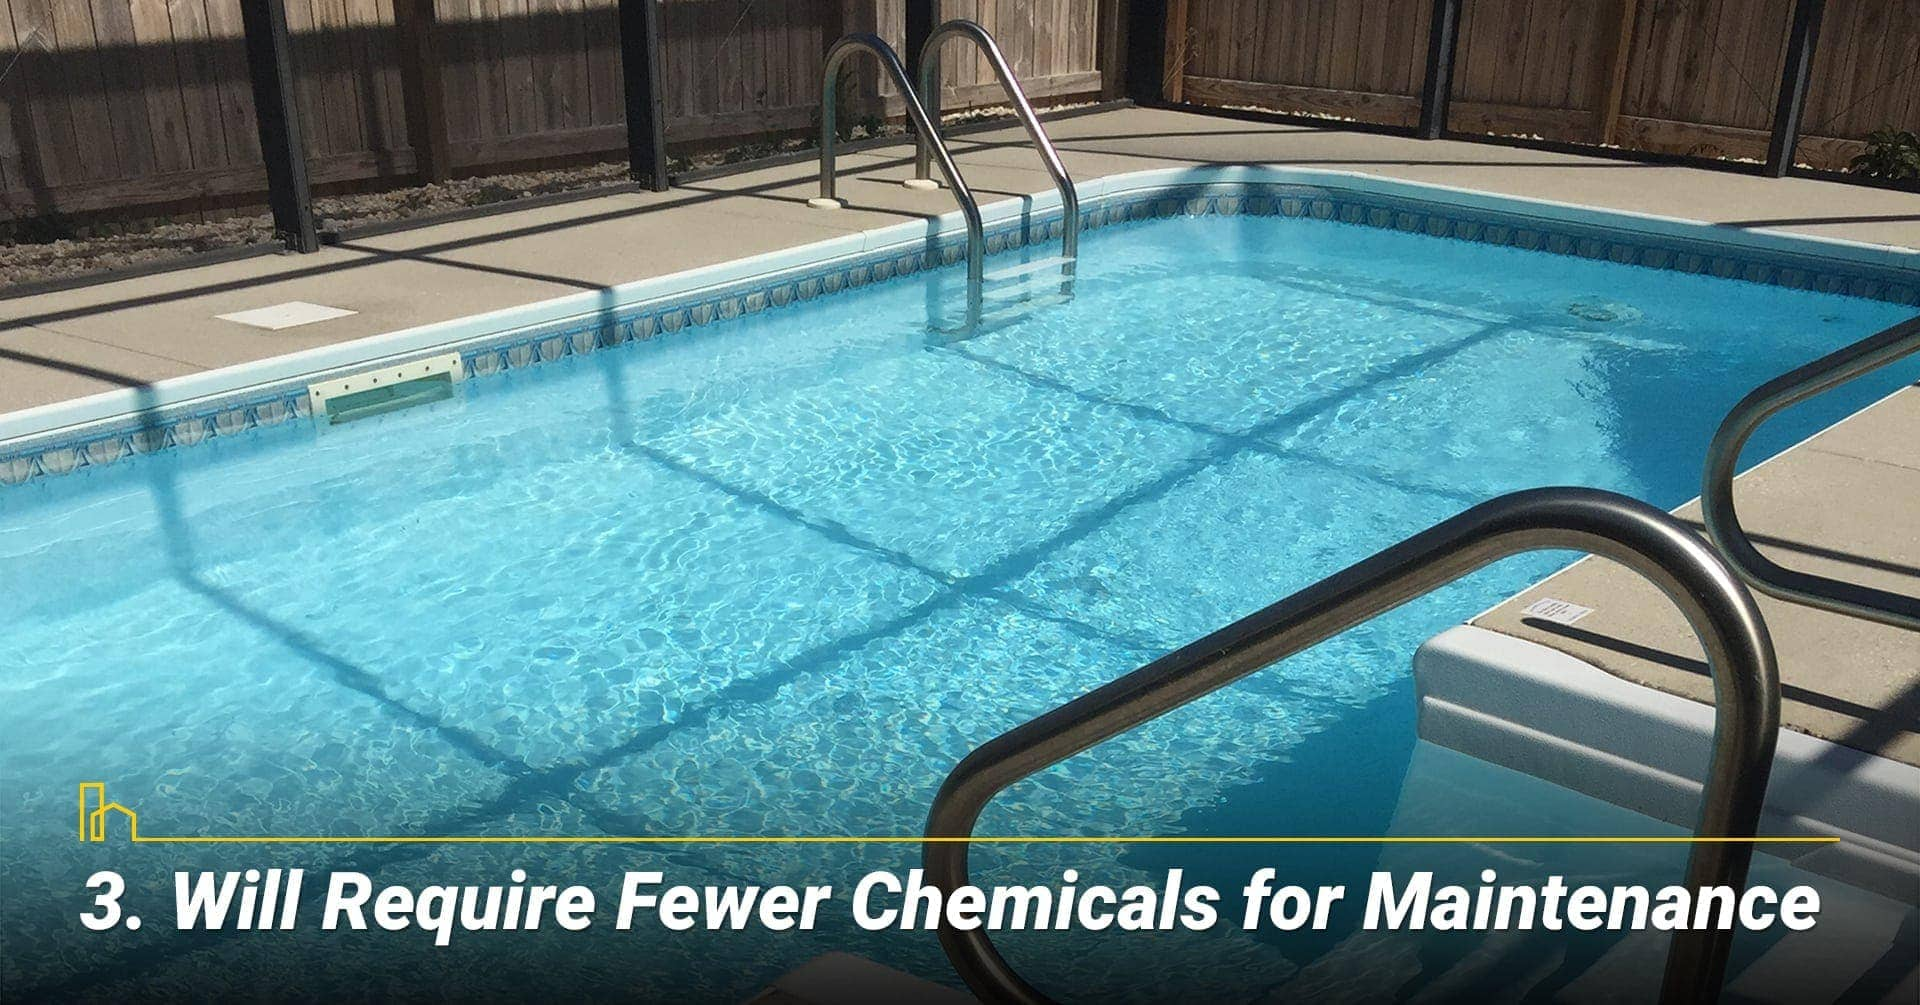 Fewer Chemicals for Maintenance, use less chemical to keep it clean